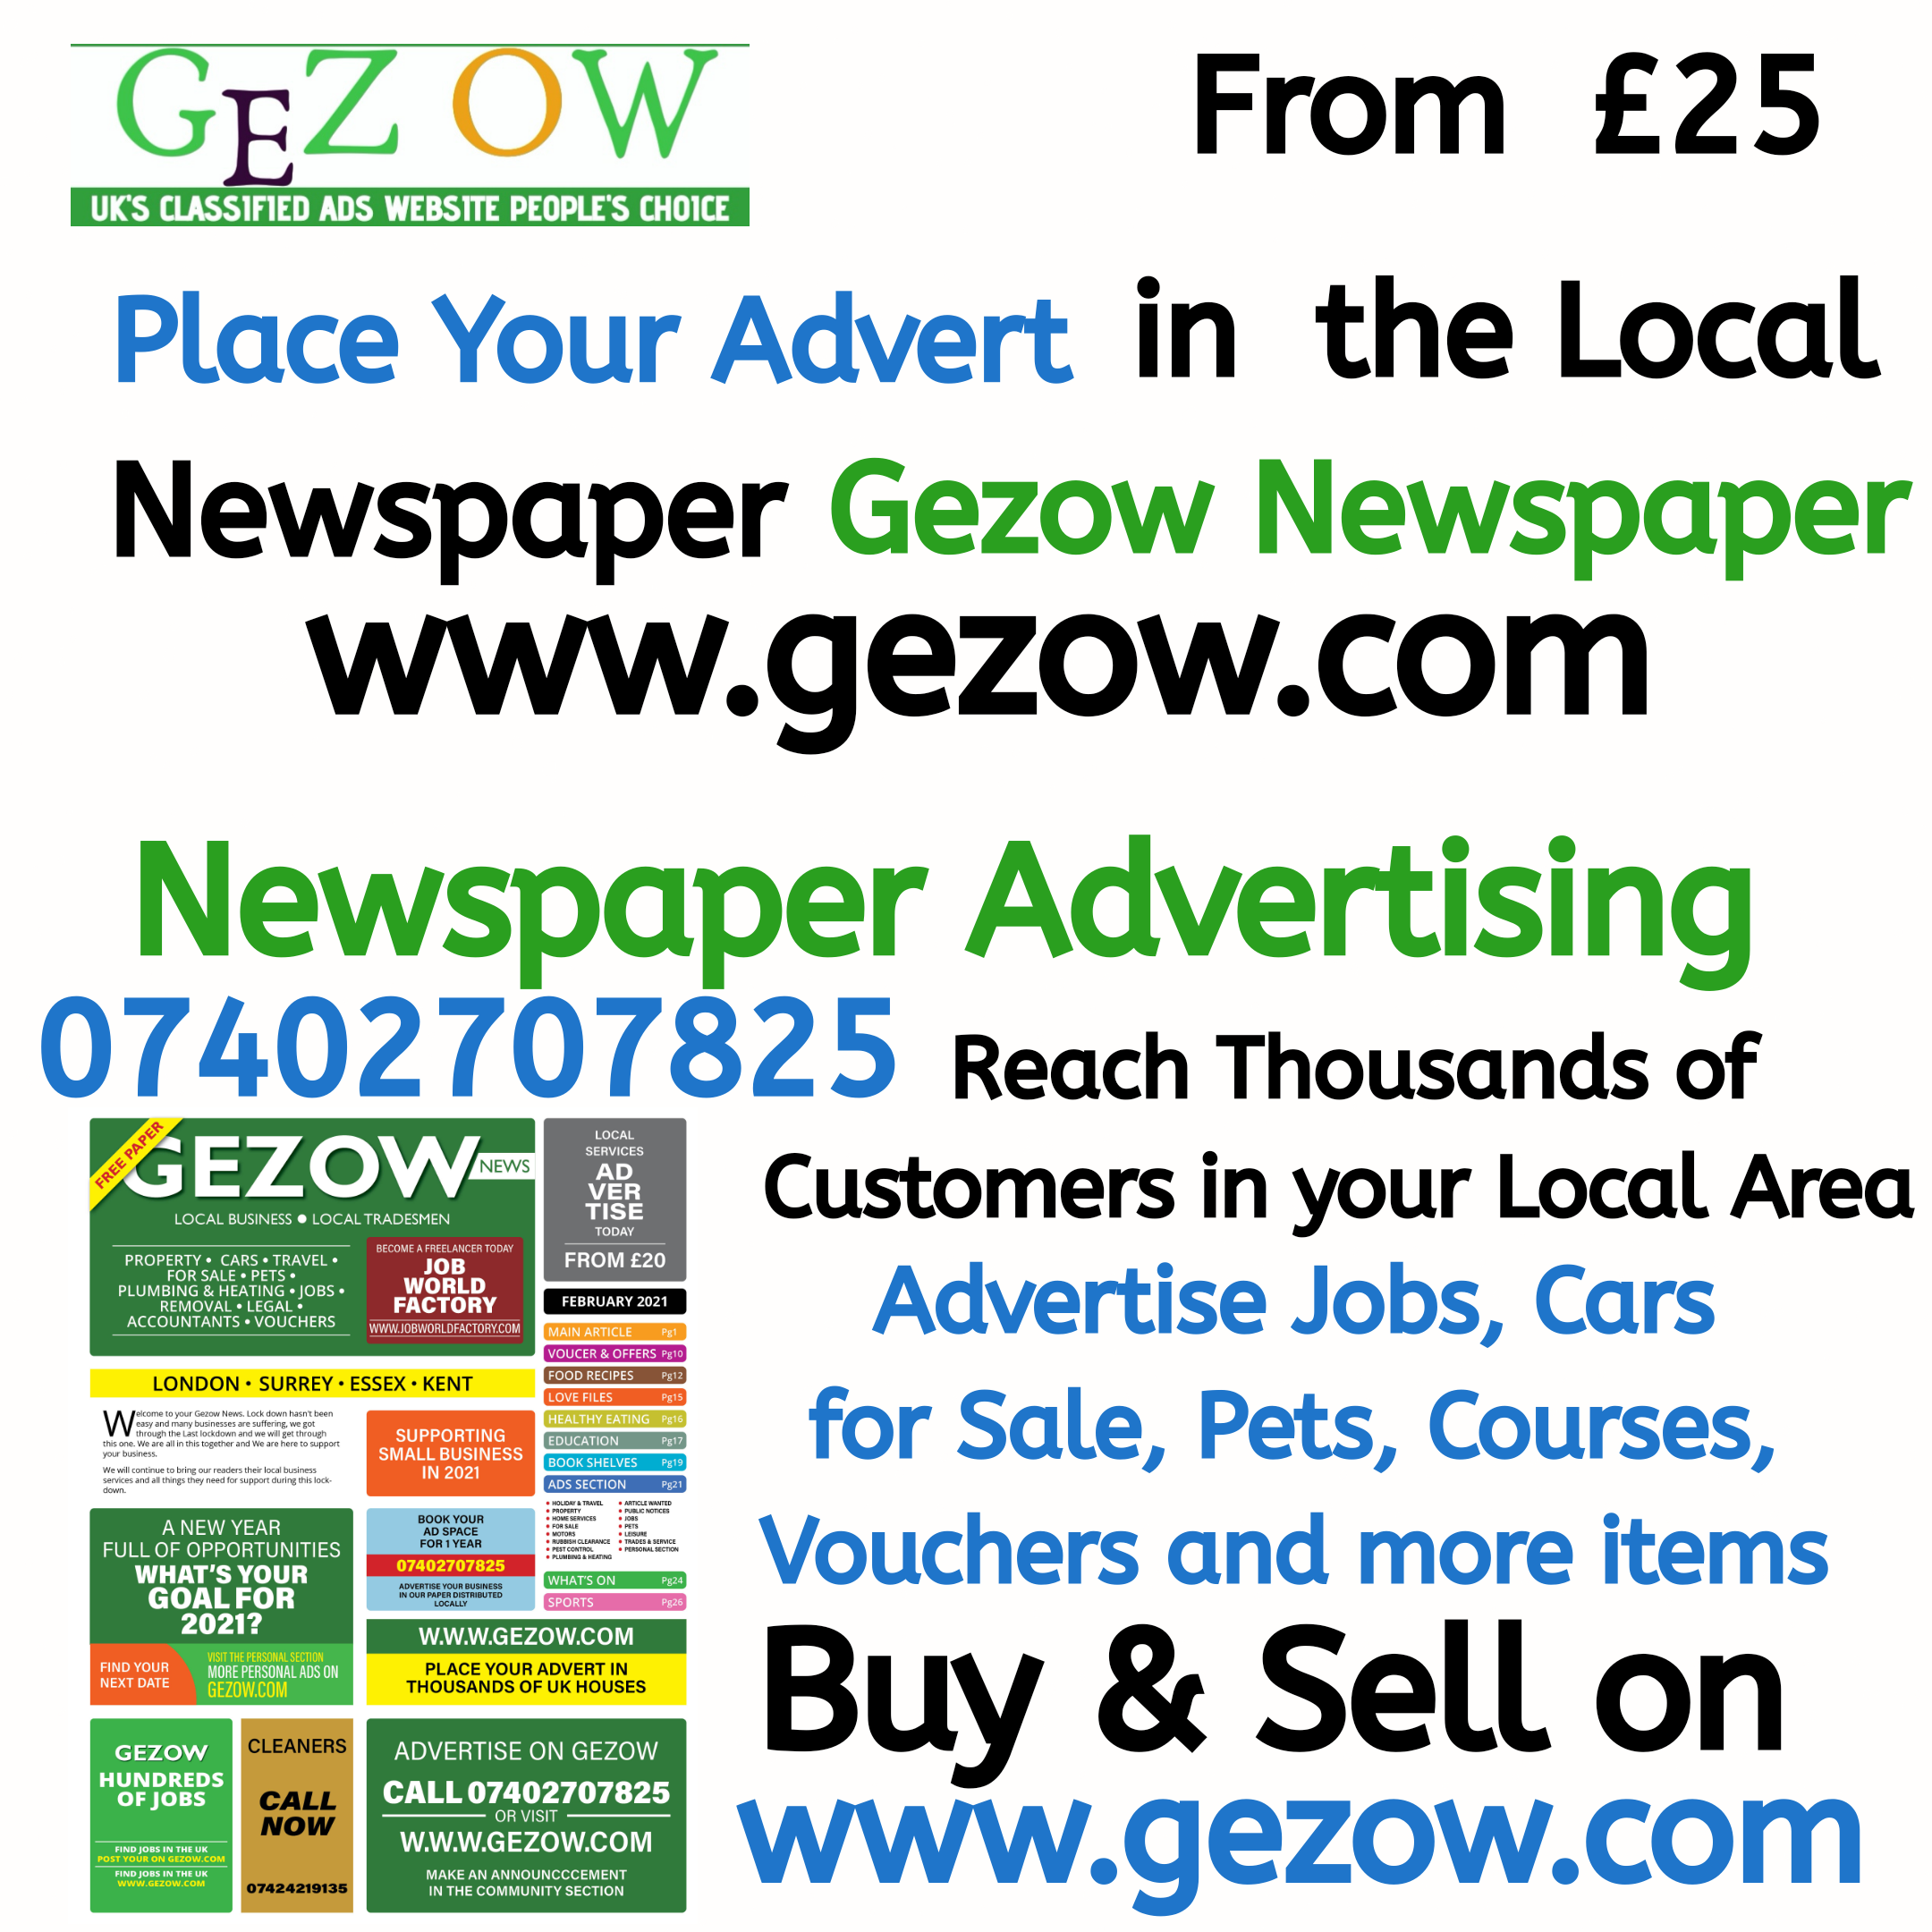 Gezow compares Other Newspapers – NEWSPAPER ADVERTISING COSTS